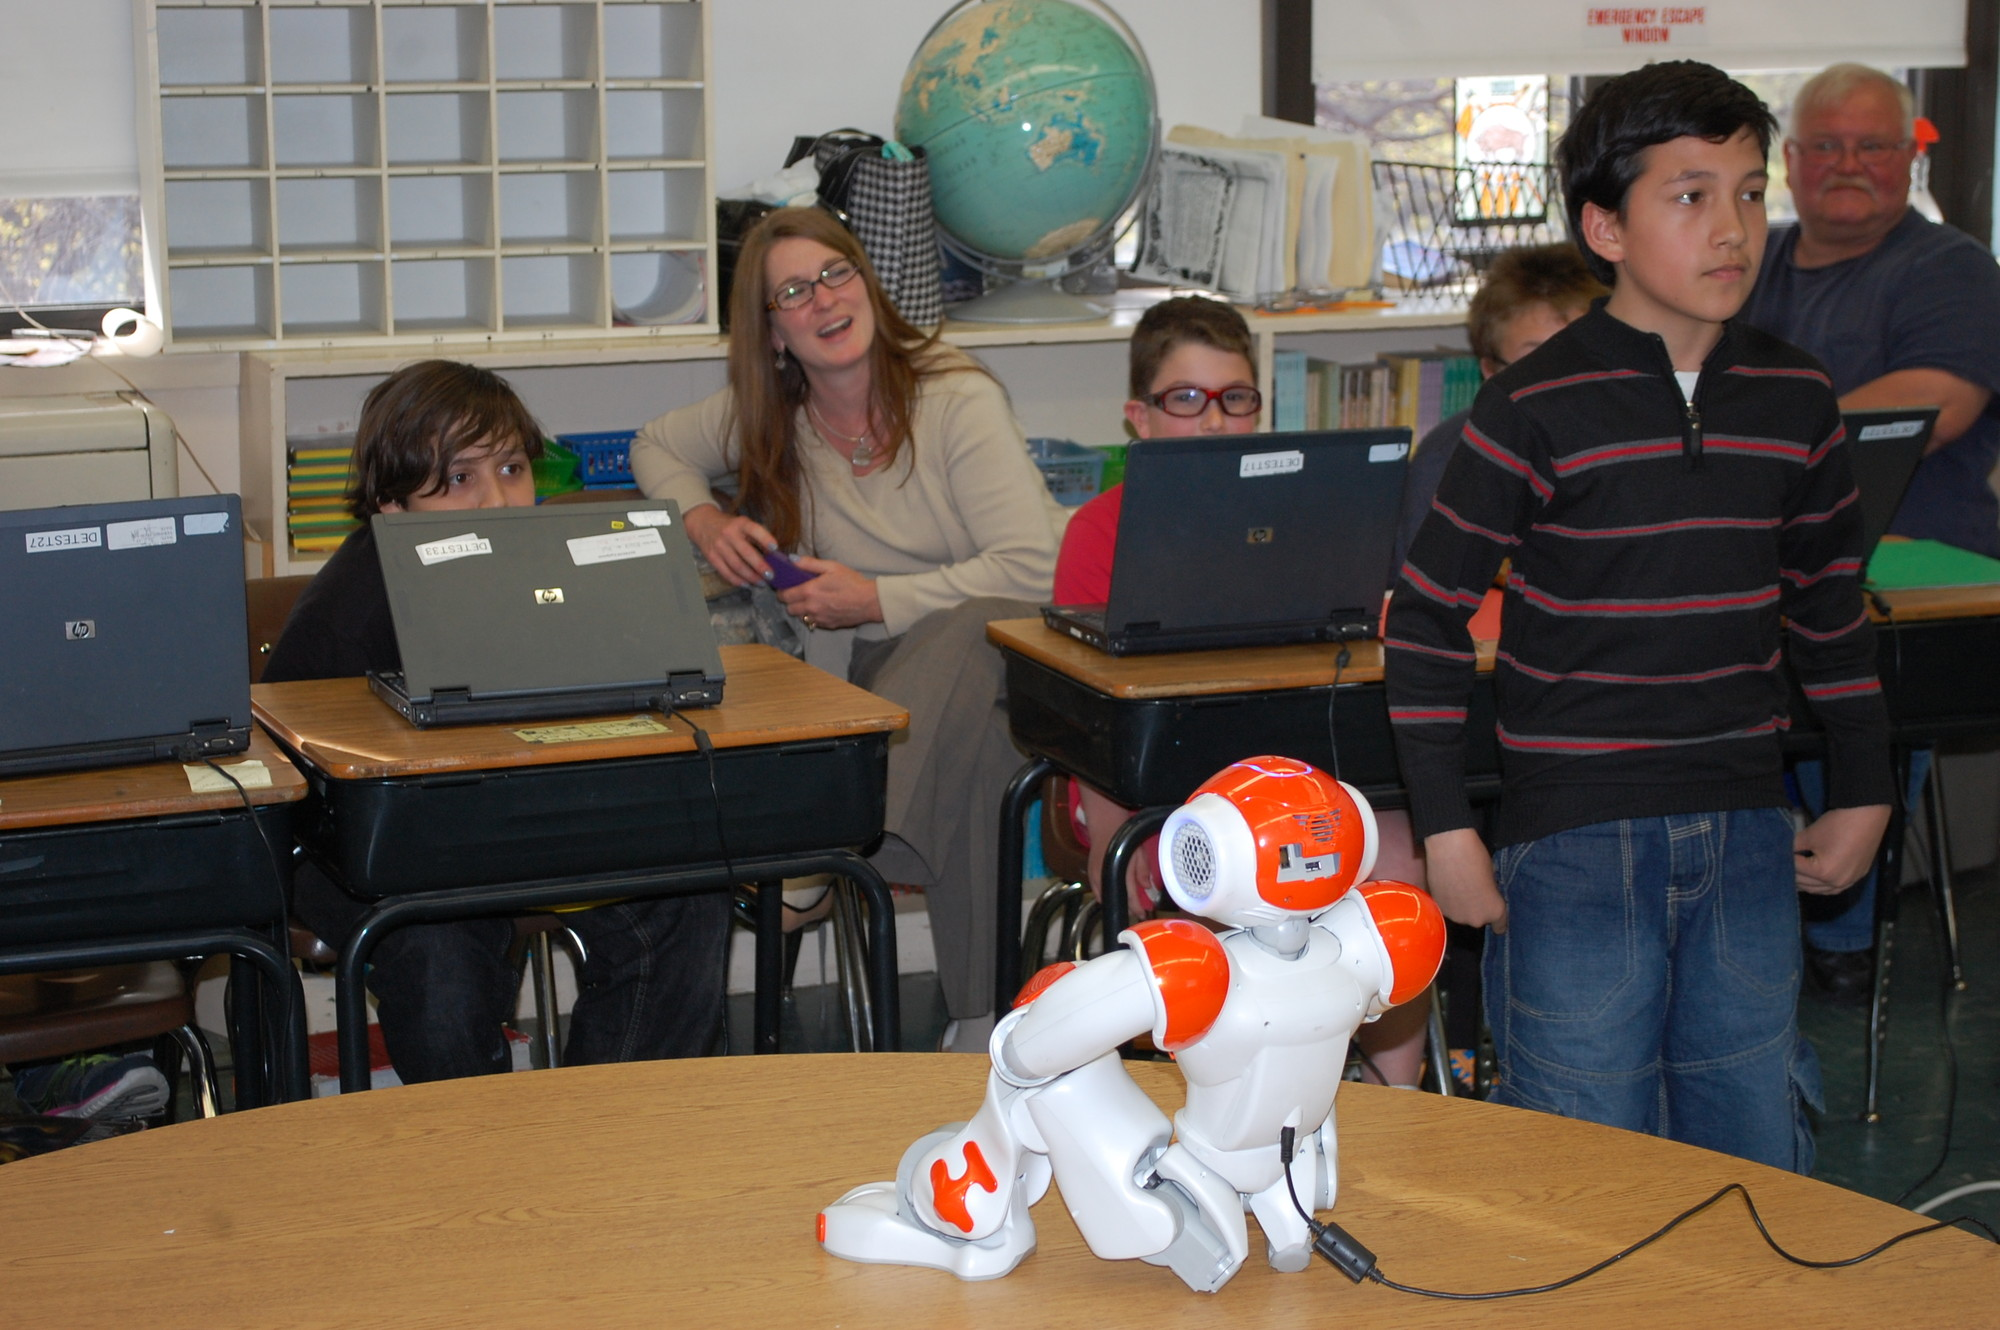 Students from the district's gifted and talented program, along with their parents, were able to learn about robots.